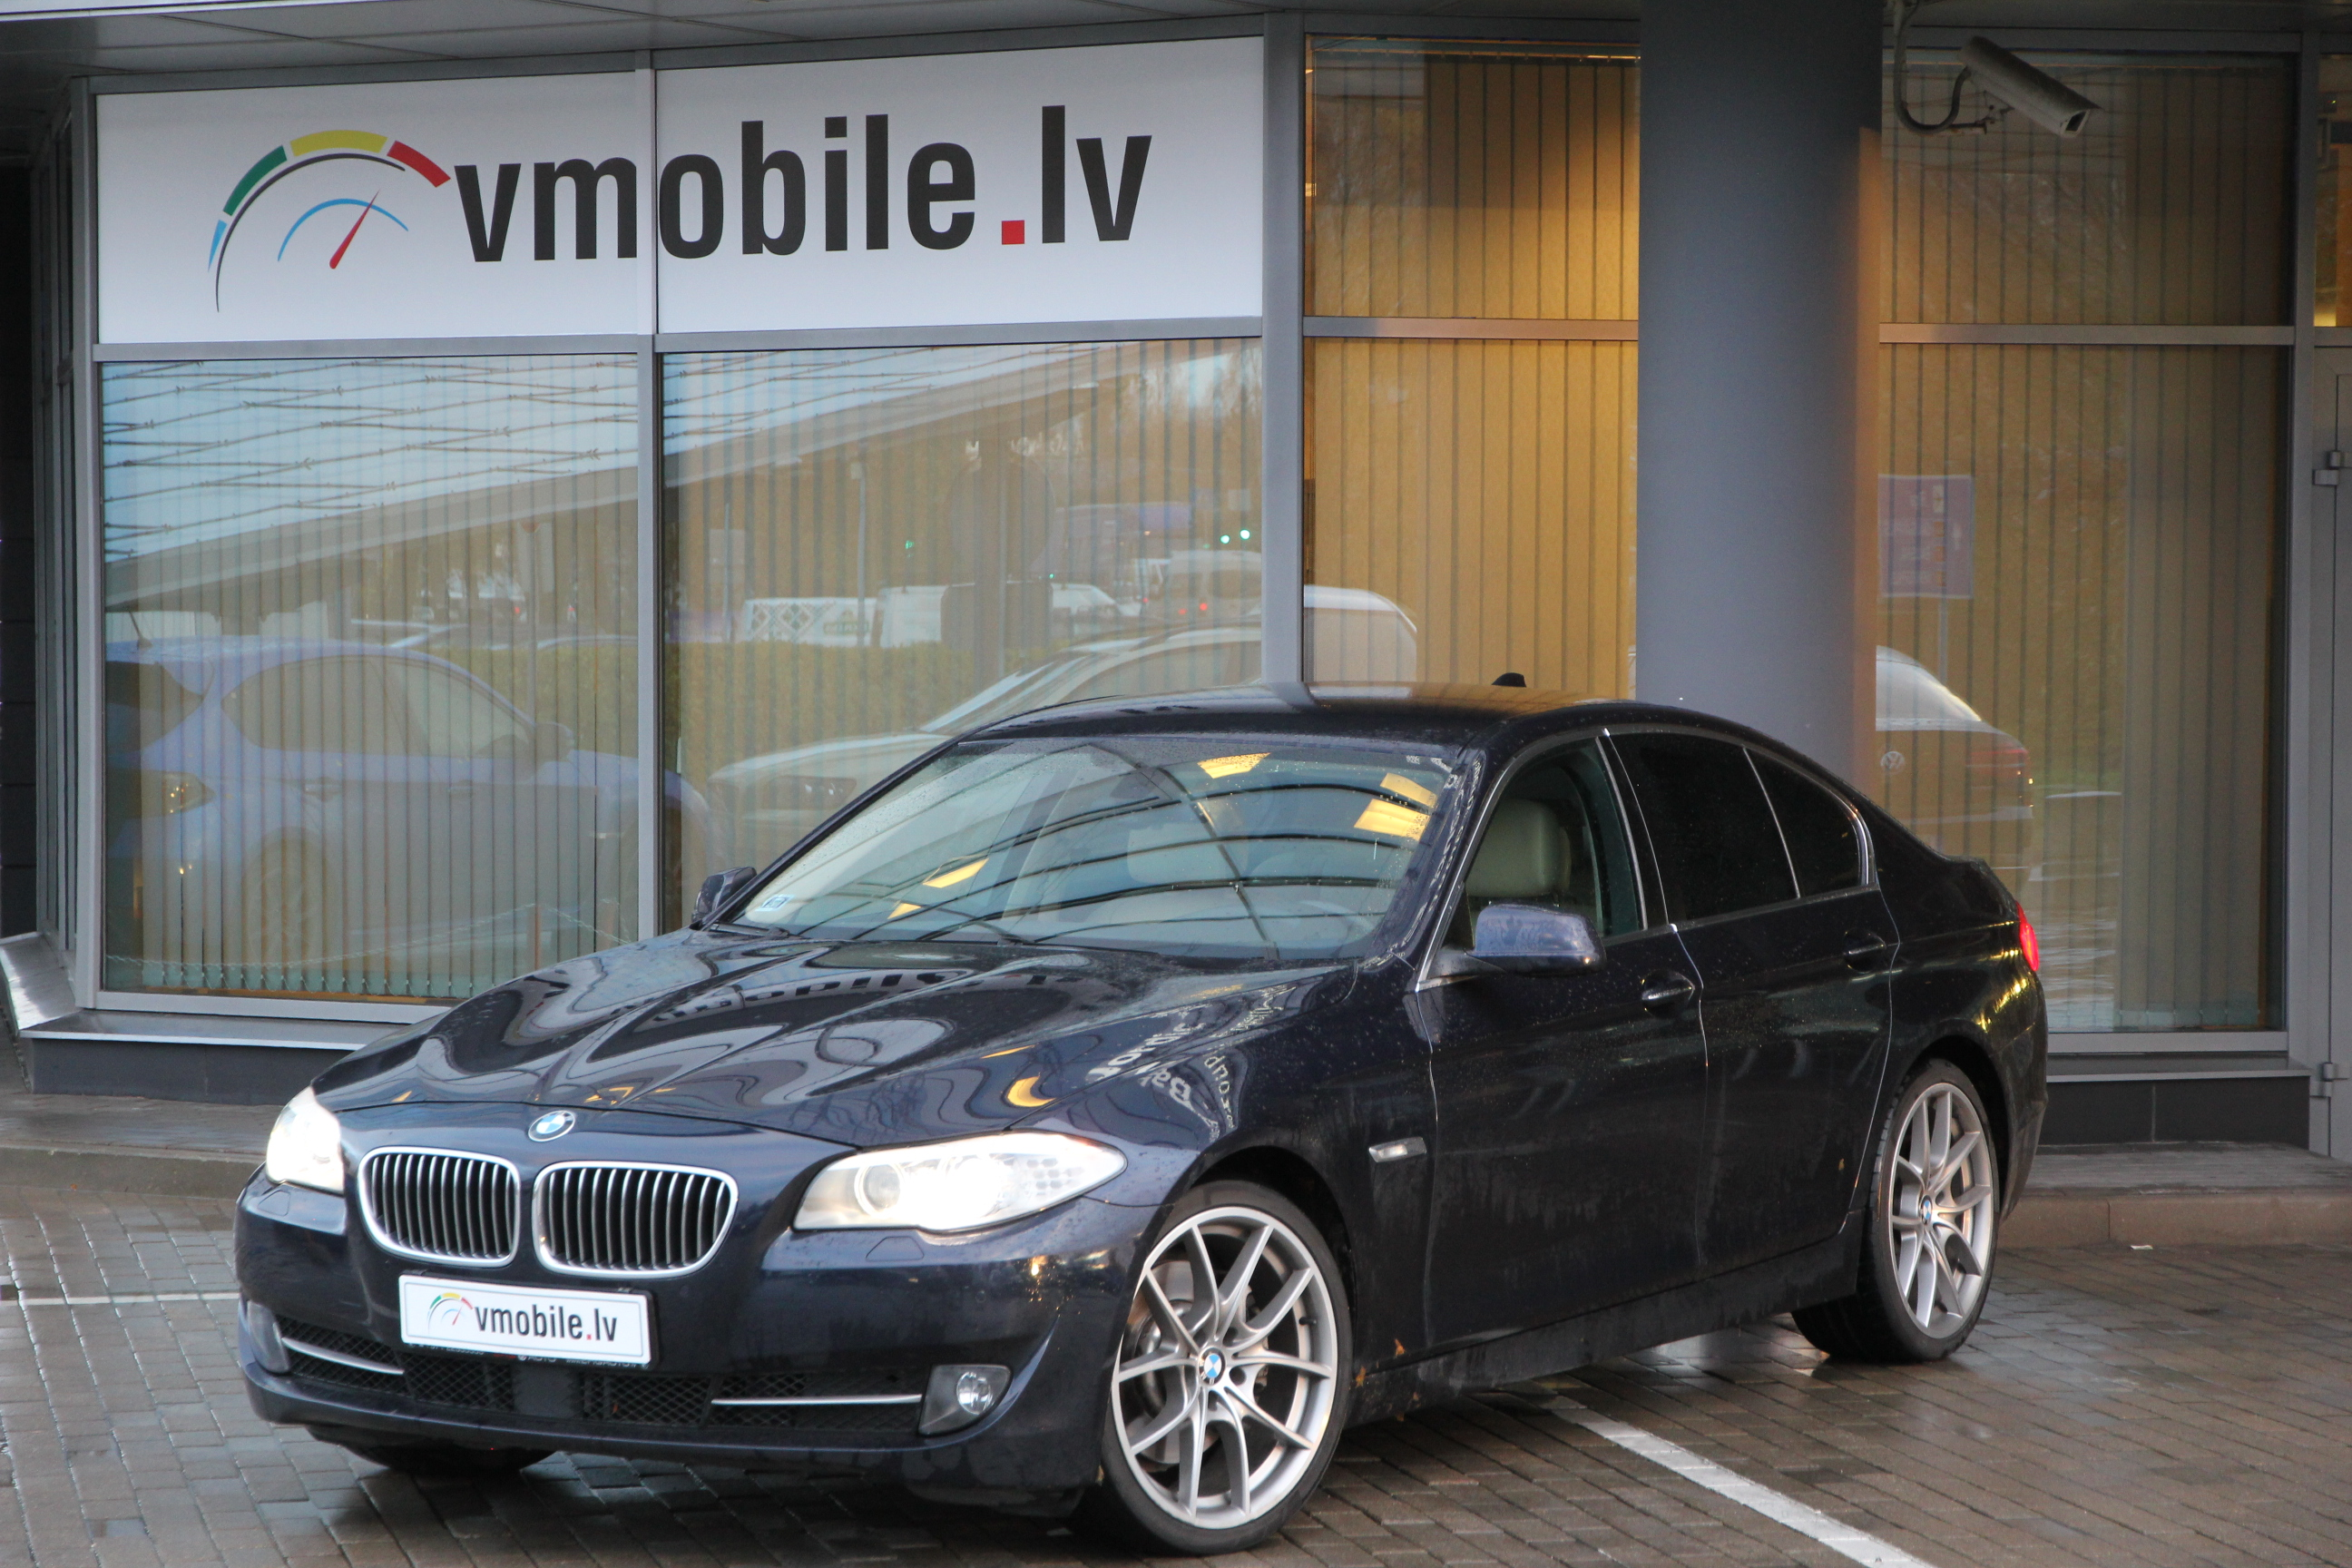 BMW 5 series 3.0d xdrive 258HP